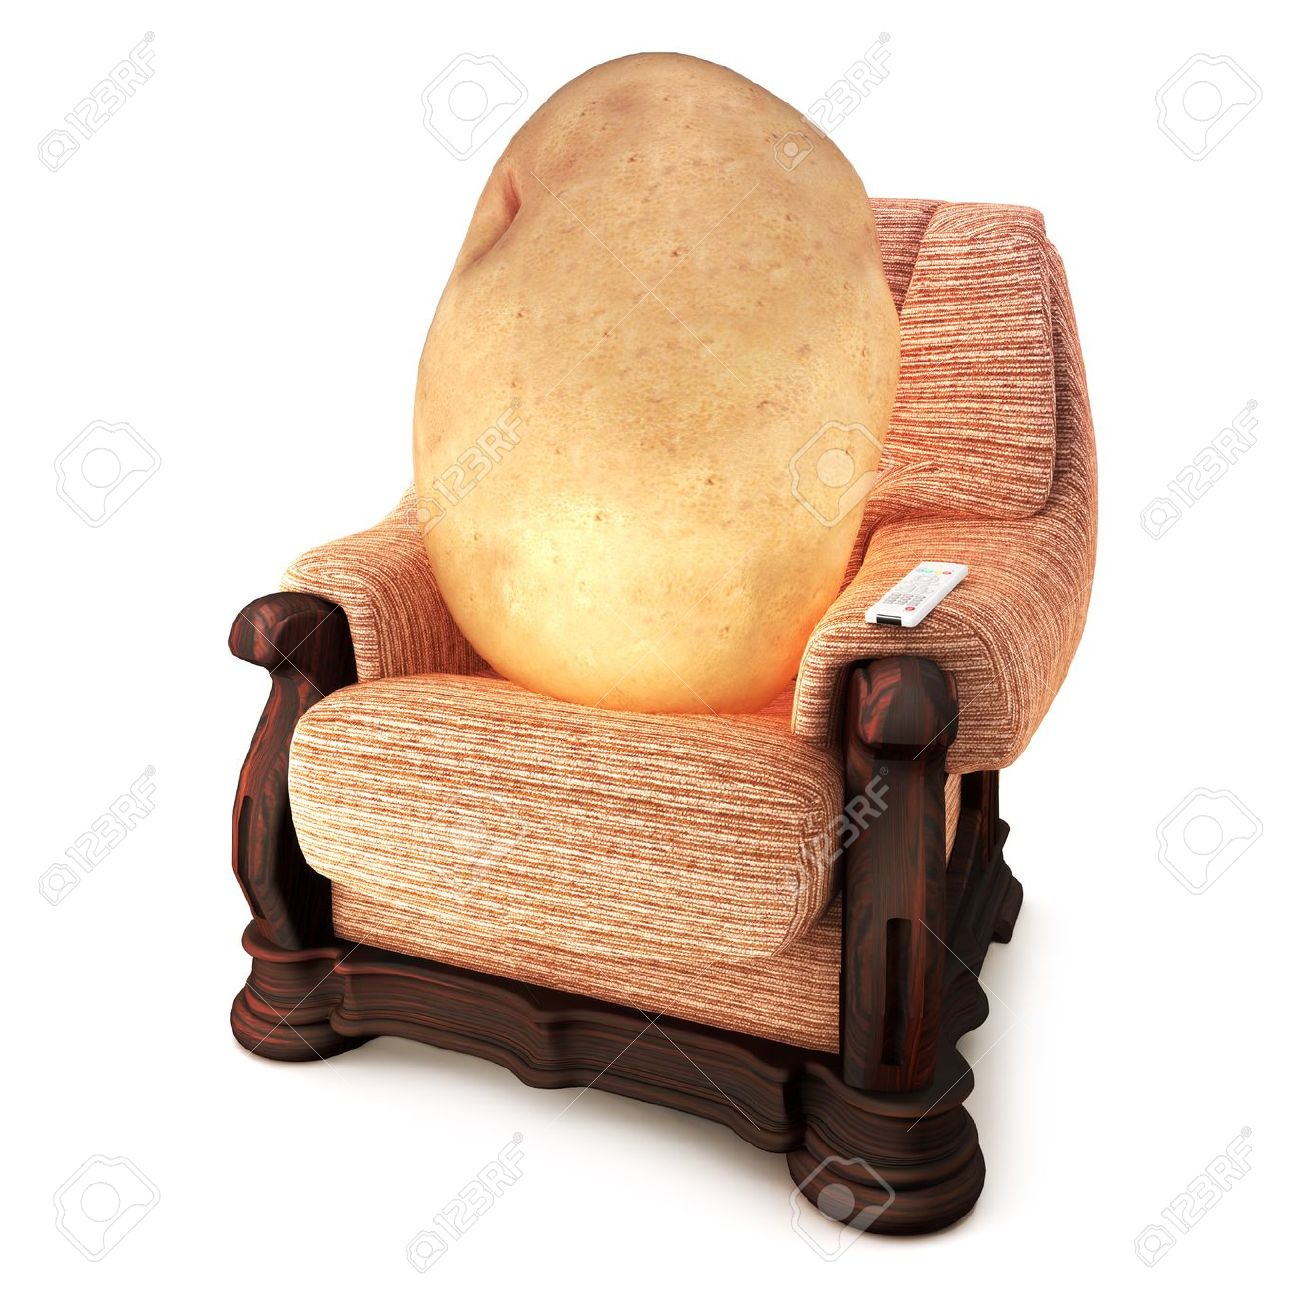 hight resolution of an idiom showing a couch potato on a white background royalty free